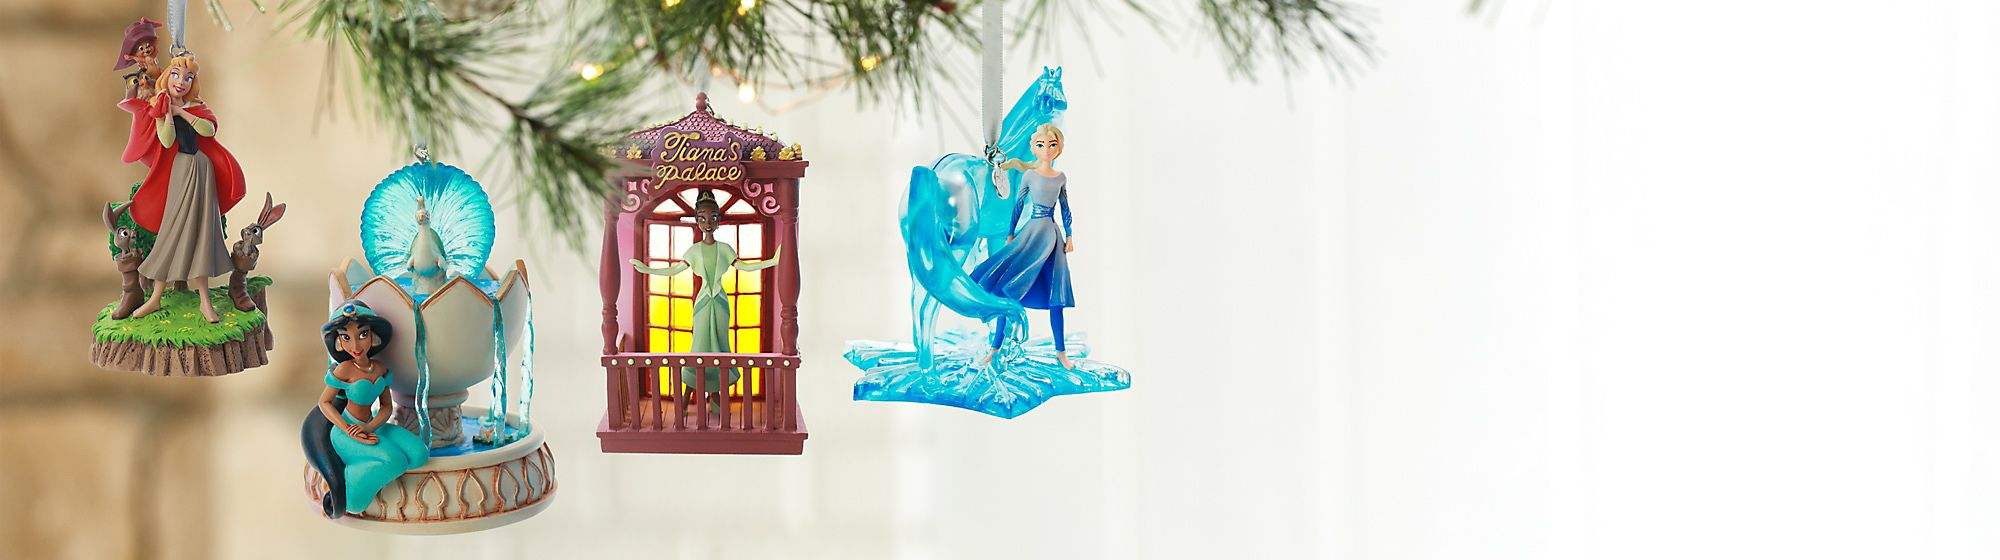 Christmas Ornaments Let the festive fun begin as you deck the halls with our enchanting ornaments